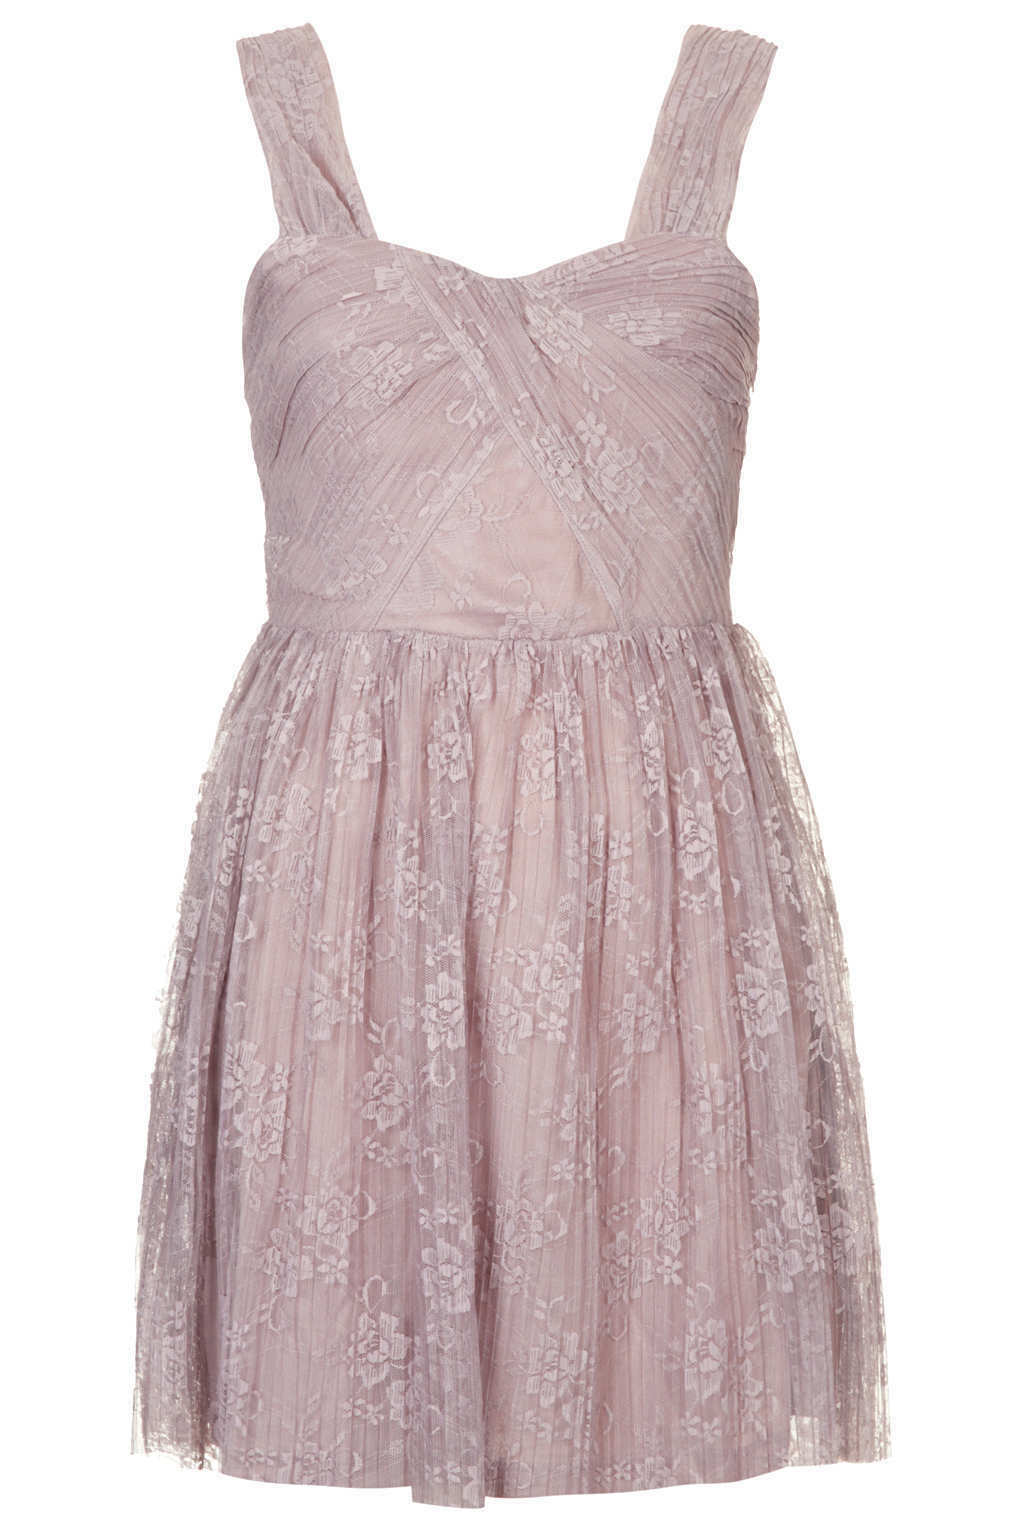 530c1b3566692 New TOPSHOP lace pleated dress in Mink nocjel2871-Dresses - ceiling ...